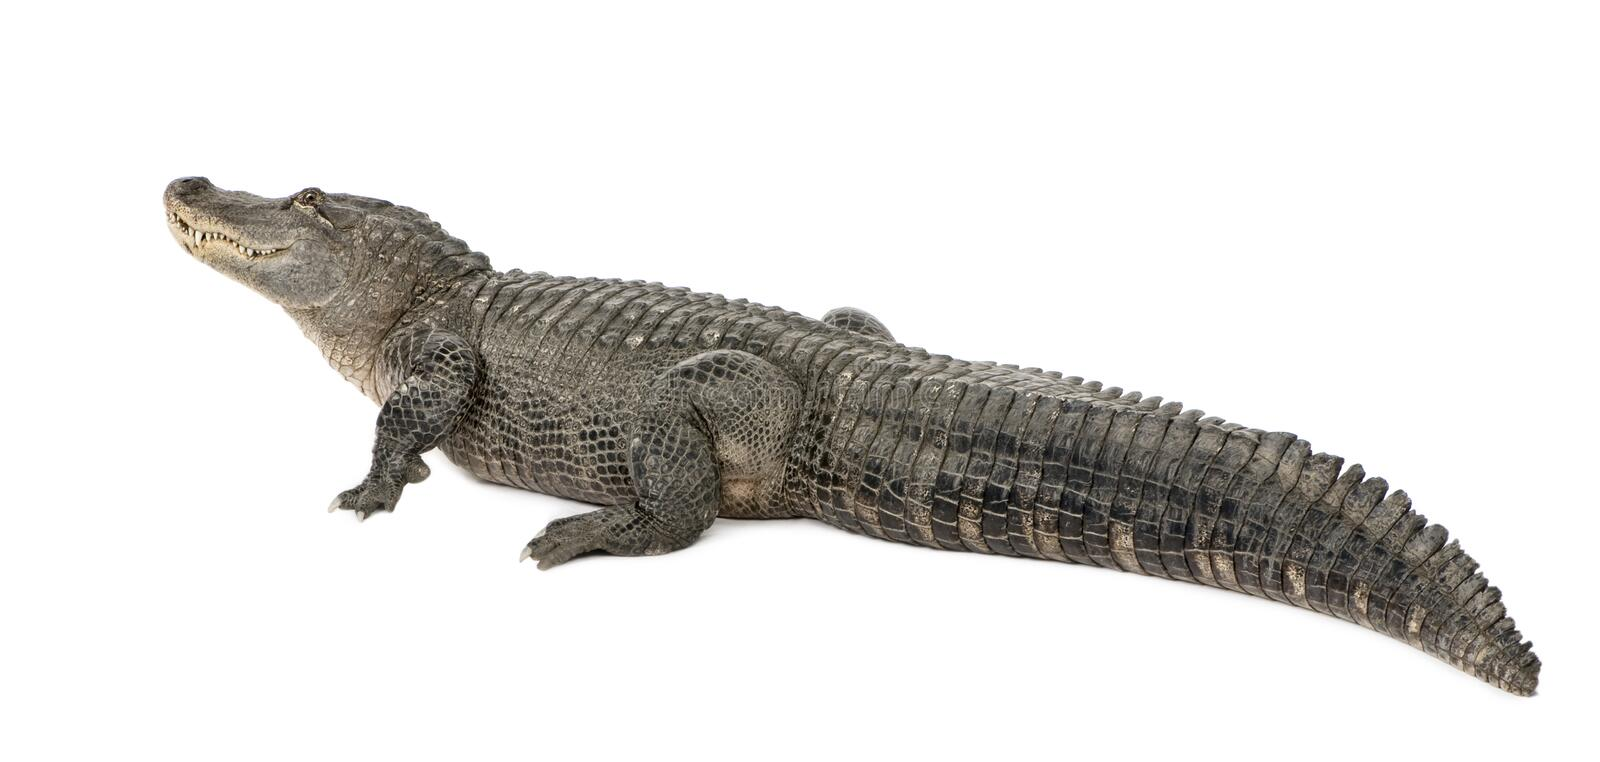 American Alligator - Alligator mississippiensis. American Alligator (30 years) - Alligator mississippiensis in front of a white background royalty free stock photos